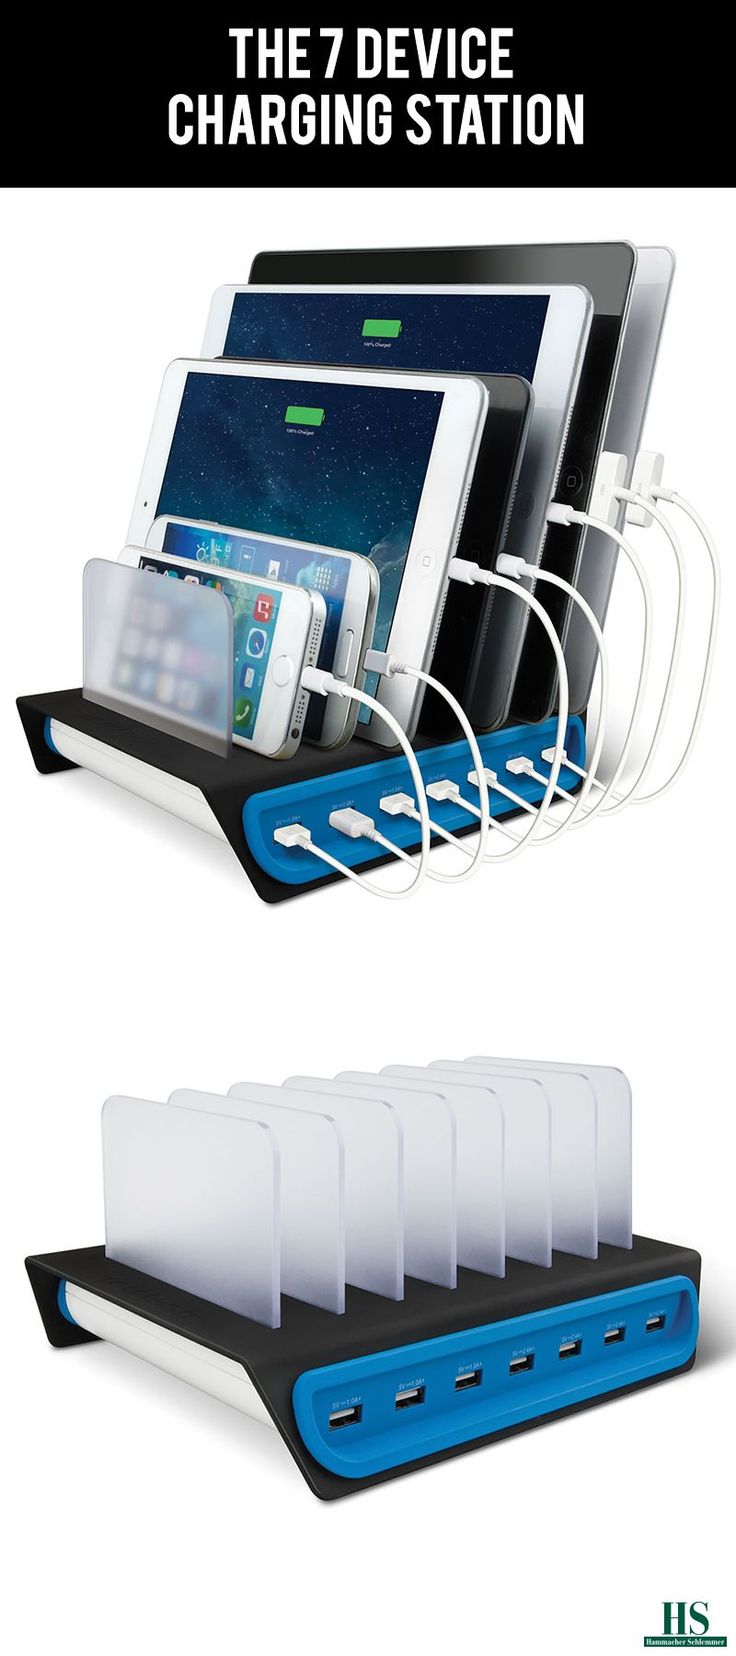 This is the charging station that supplies power to seven USB devices simultaneously. The hub draws power from a standard wall outlet and supplies up to 14 amps to its USB ports, enabling one to power tablets, e-readers, smartphones, iPods, and other electronic devices at once.